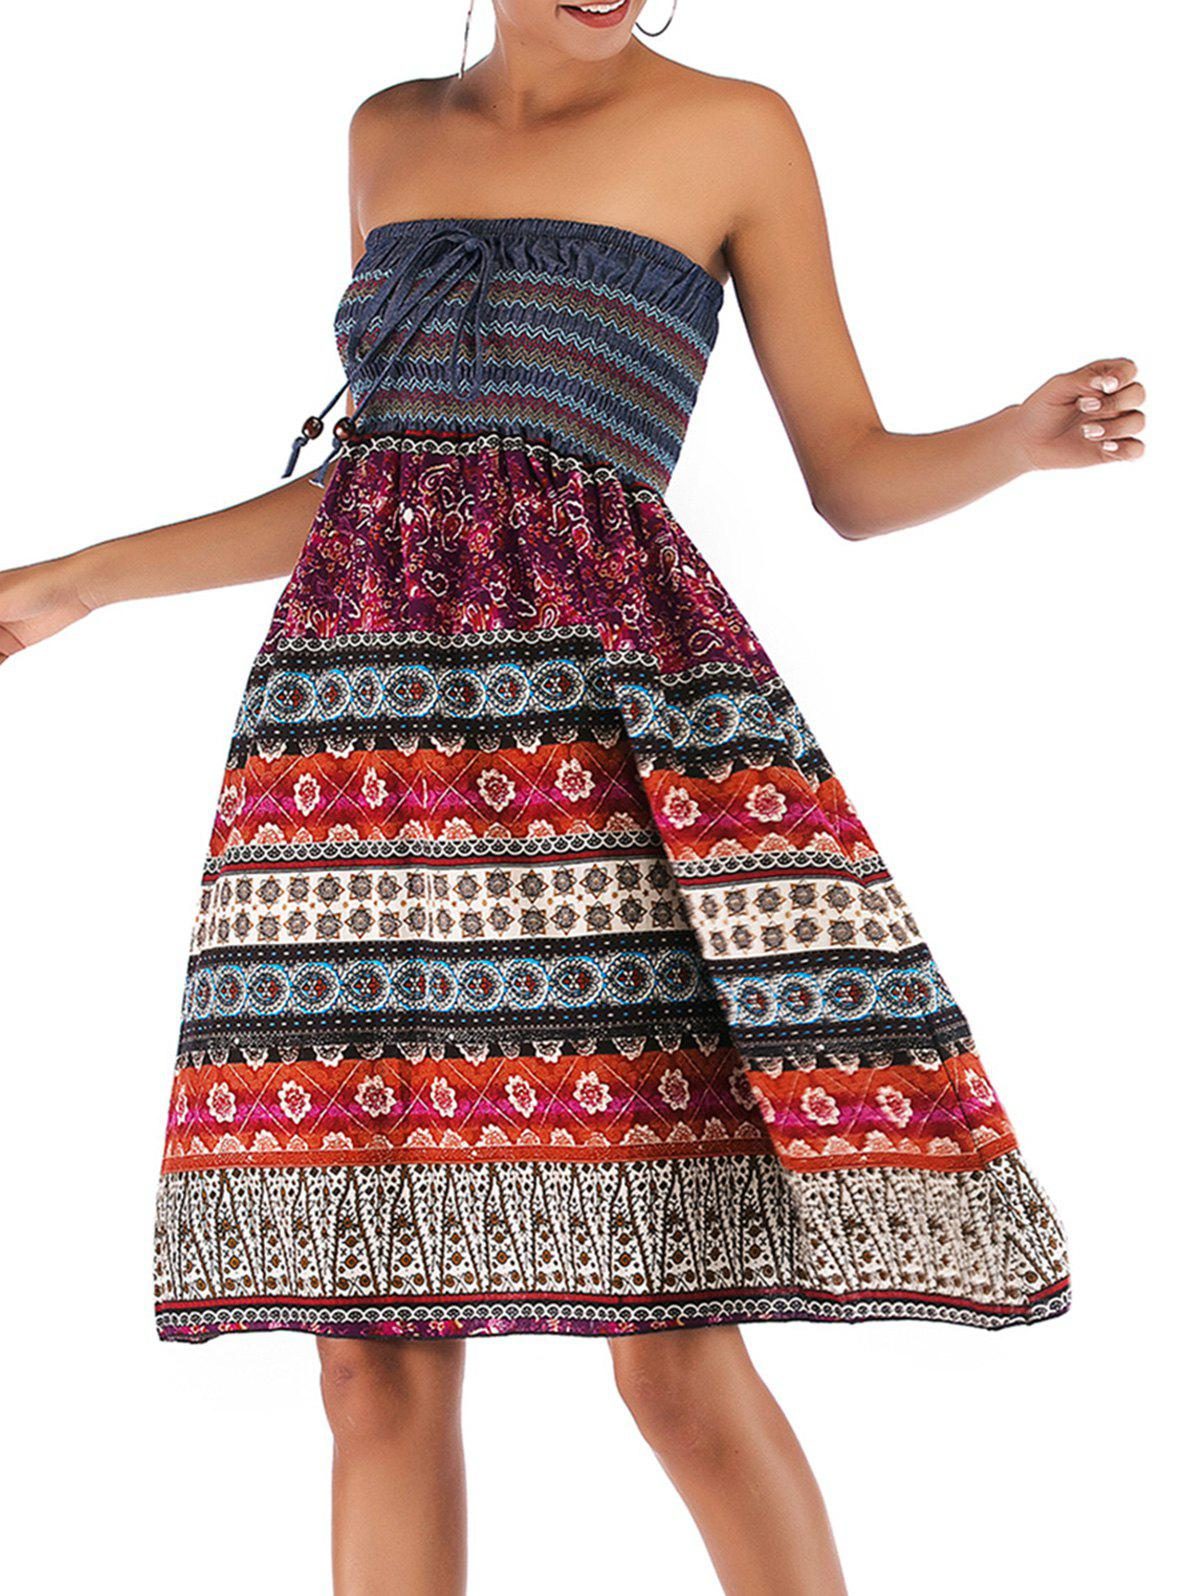 Affordable Bohemian Printed Convertible Shirred Strapless Dress